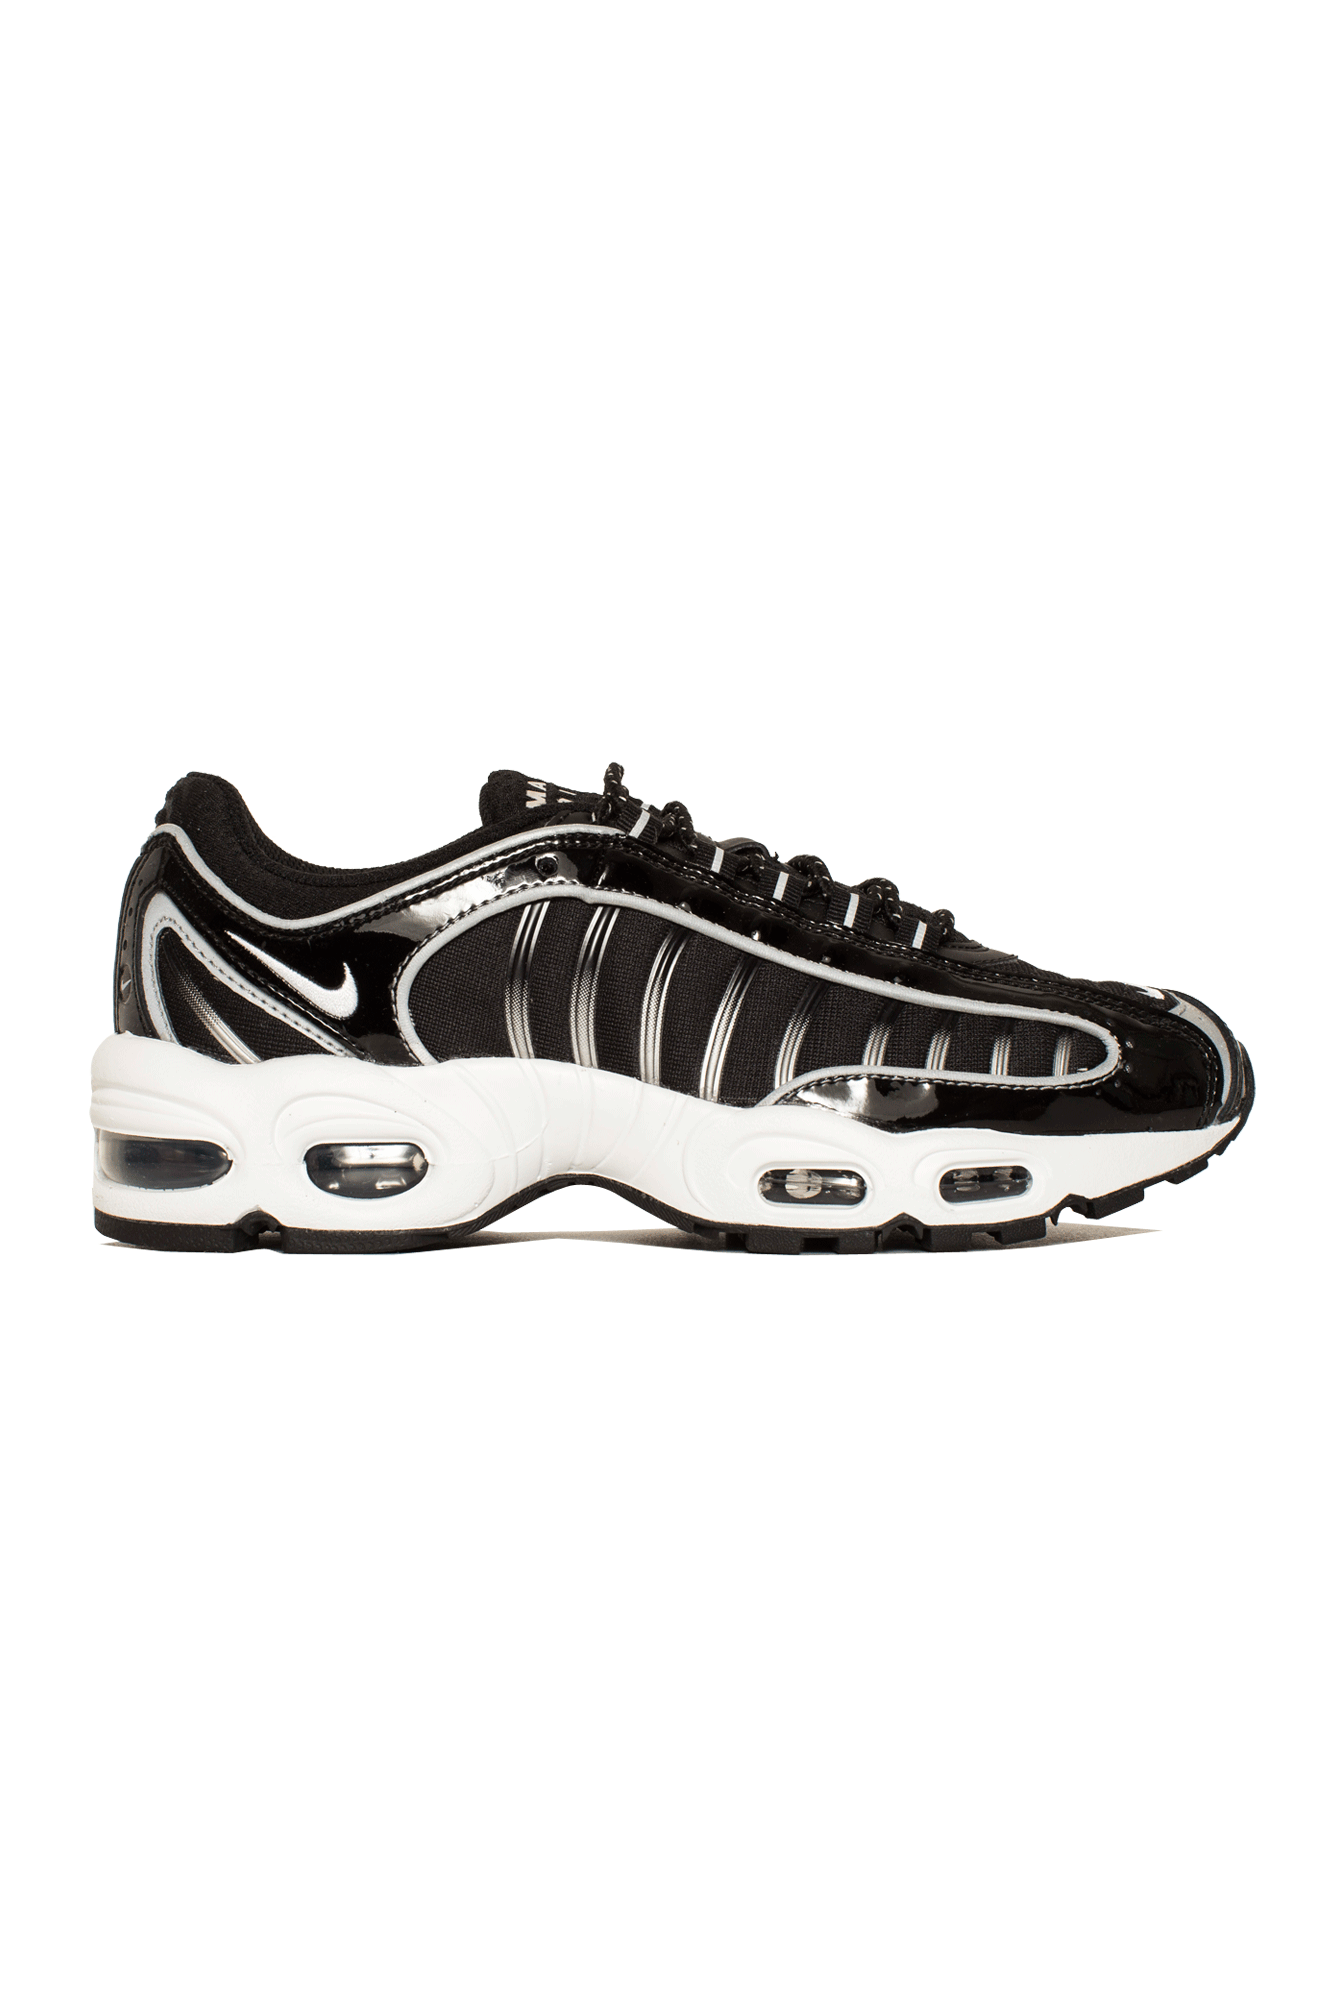 W Air Max Tailwind IV NRG Black